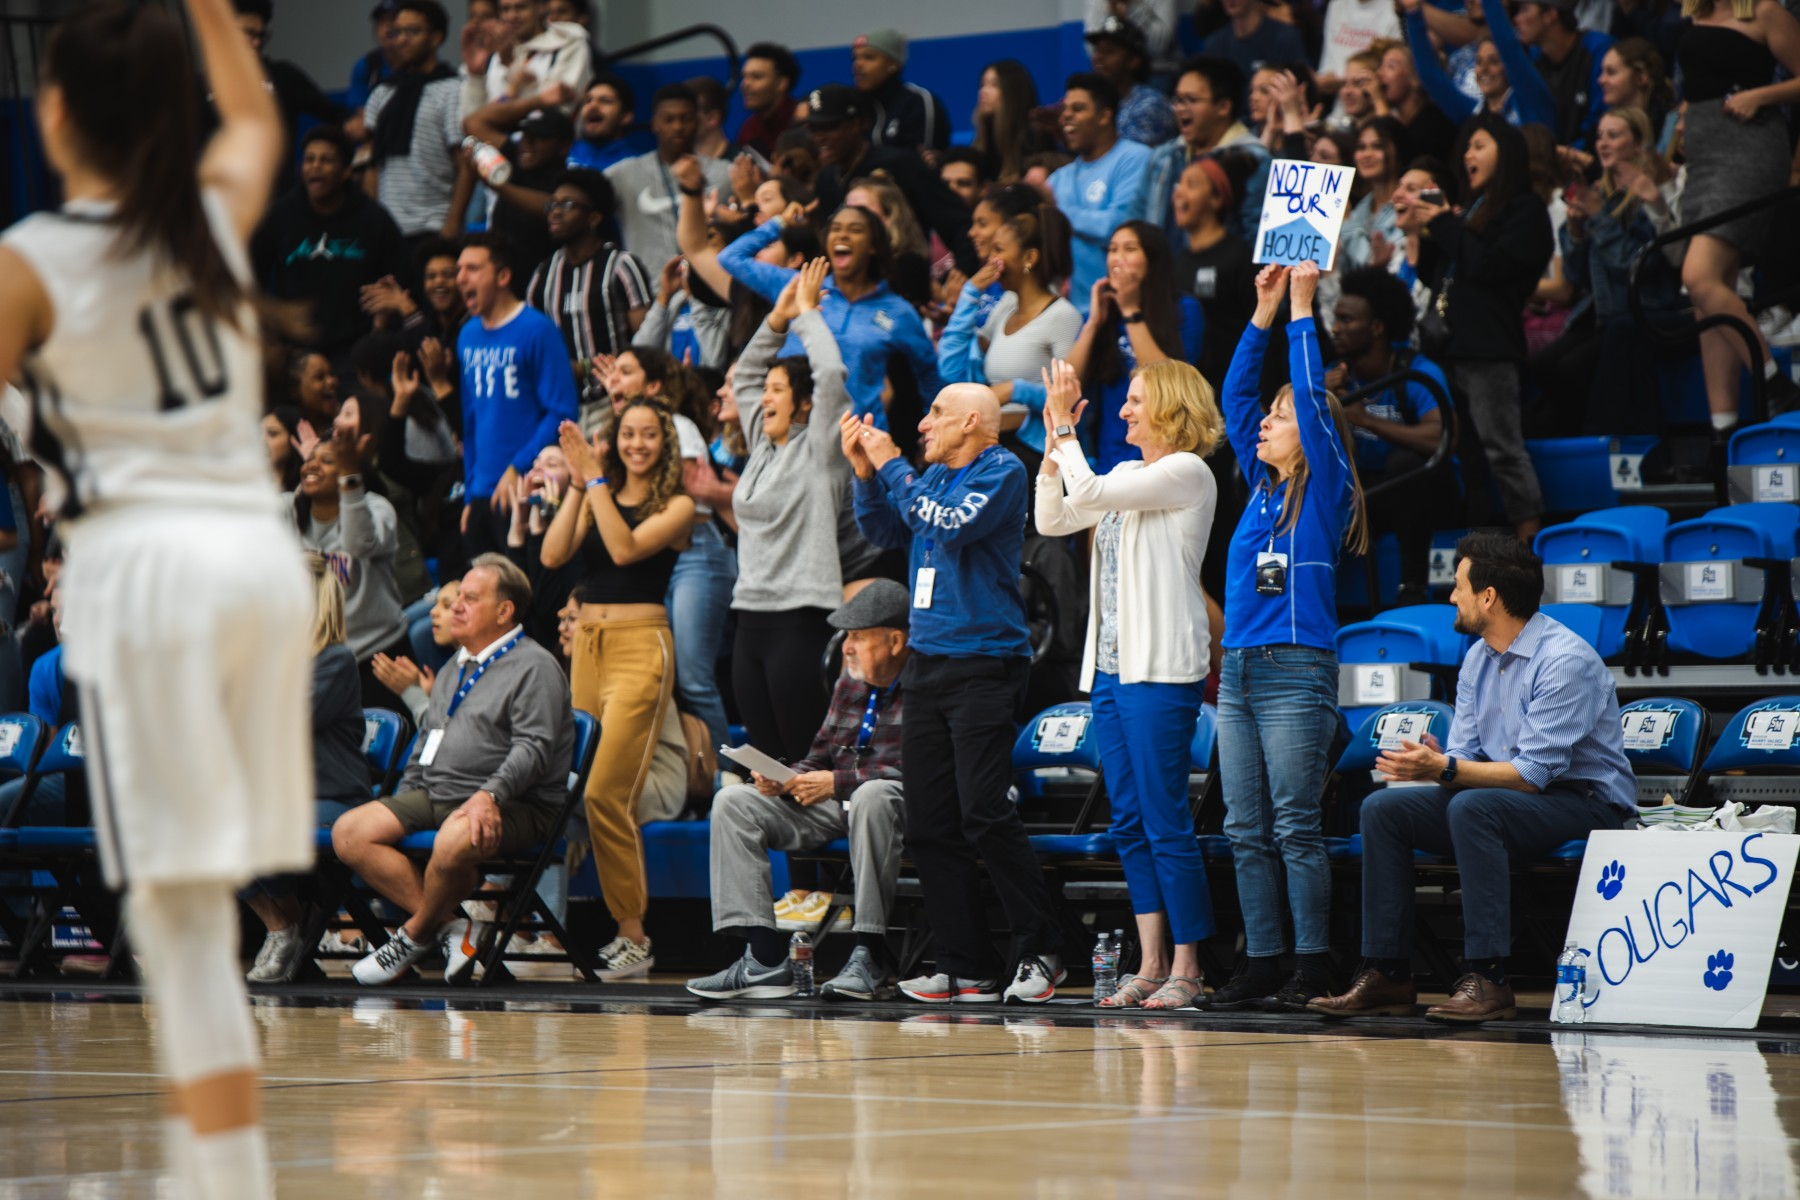 CSUSM President Ellen Neufeldt cheers on the women's basketball team with longtime university supporters Carleen Kreider and Dick Lansing on Tuesday night. The Cougars beat Sonoma State to advance to the CCAA Tournament semifinals.